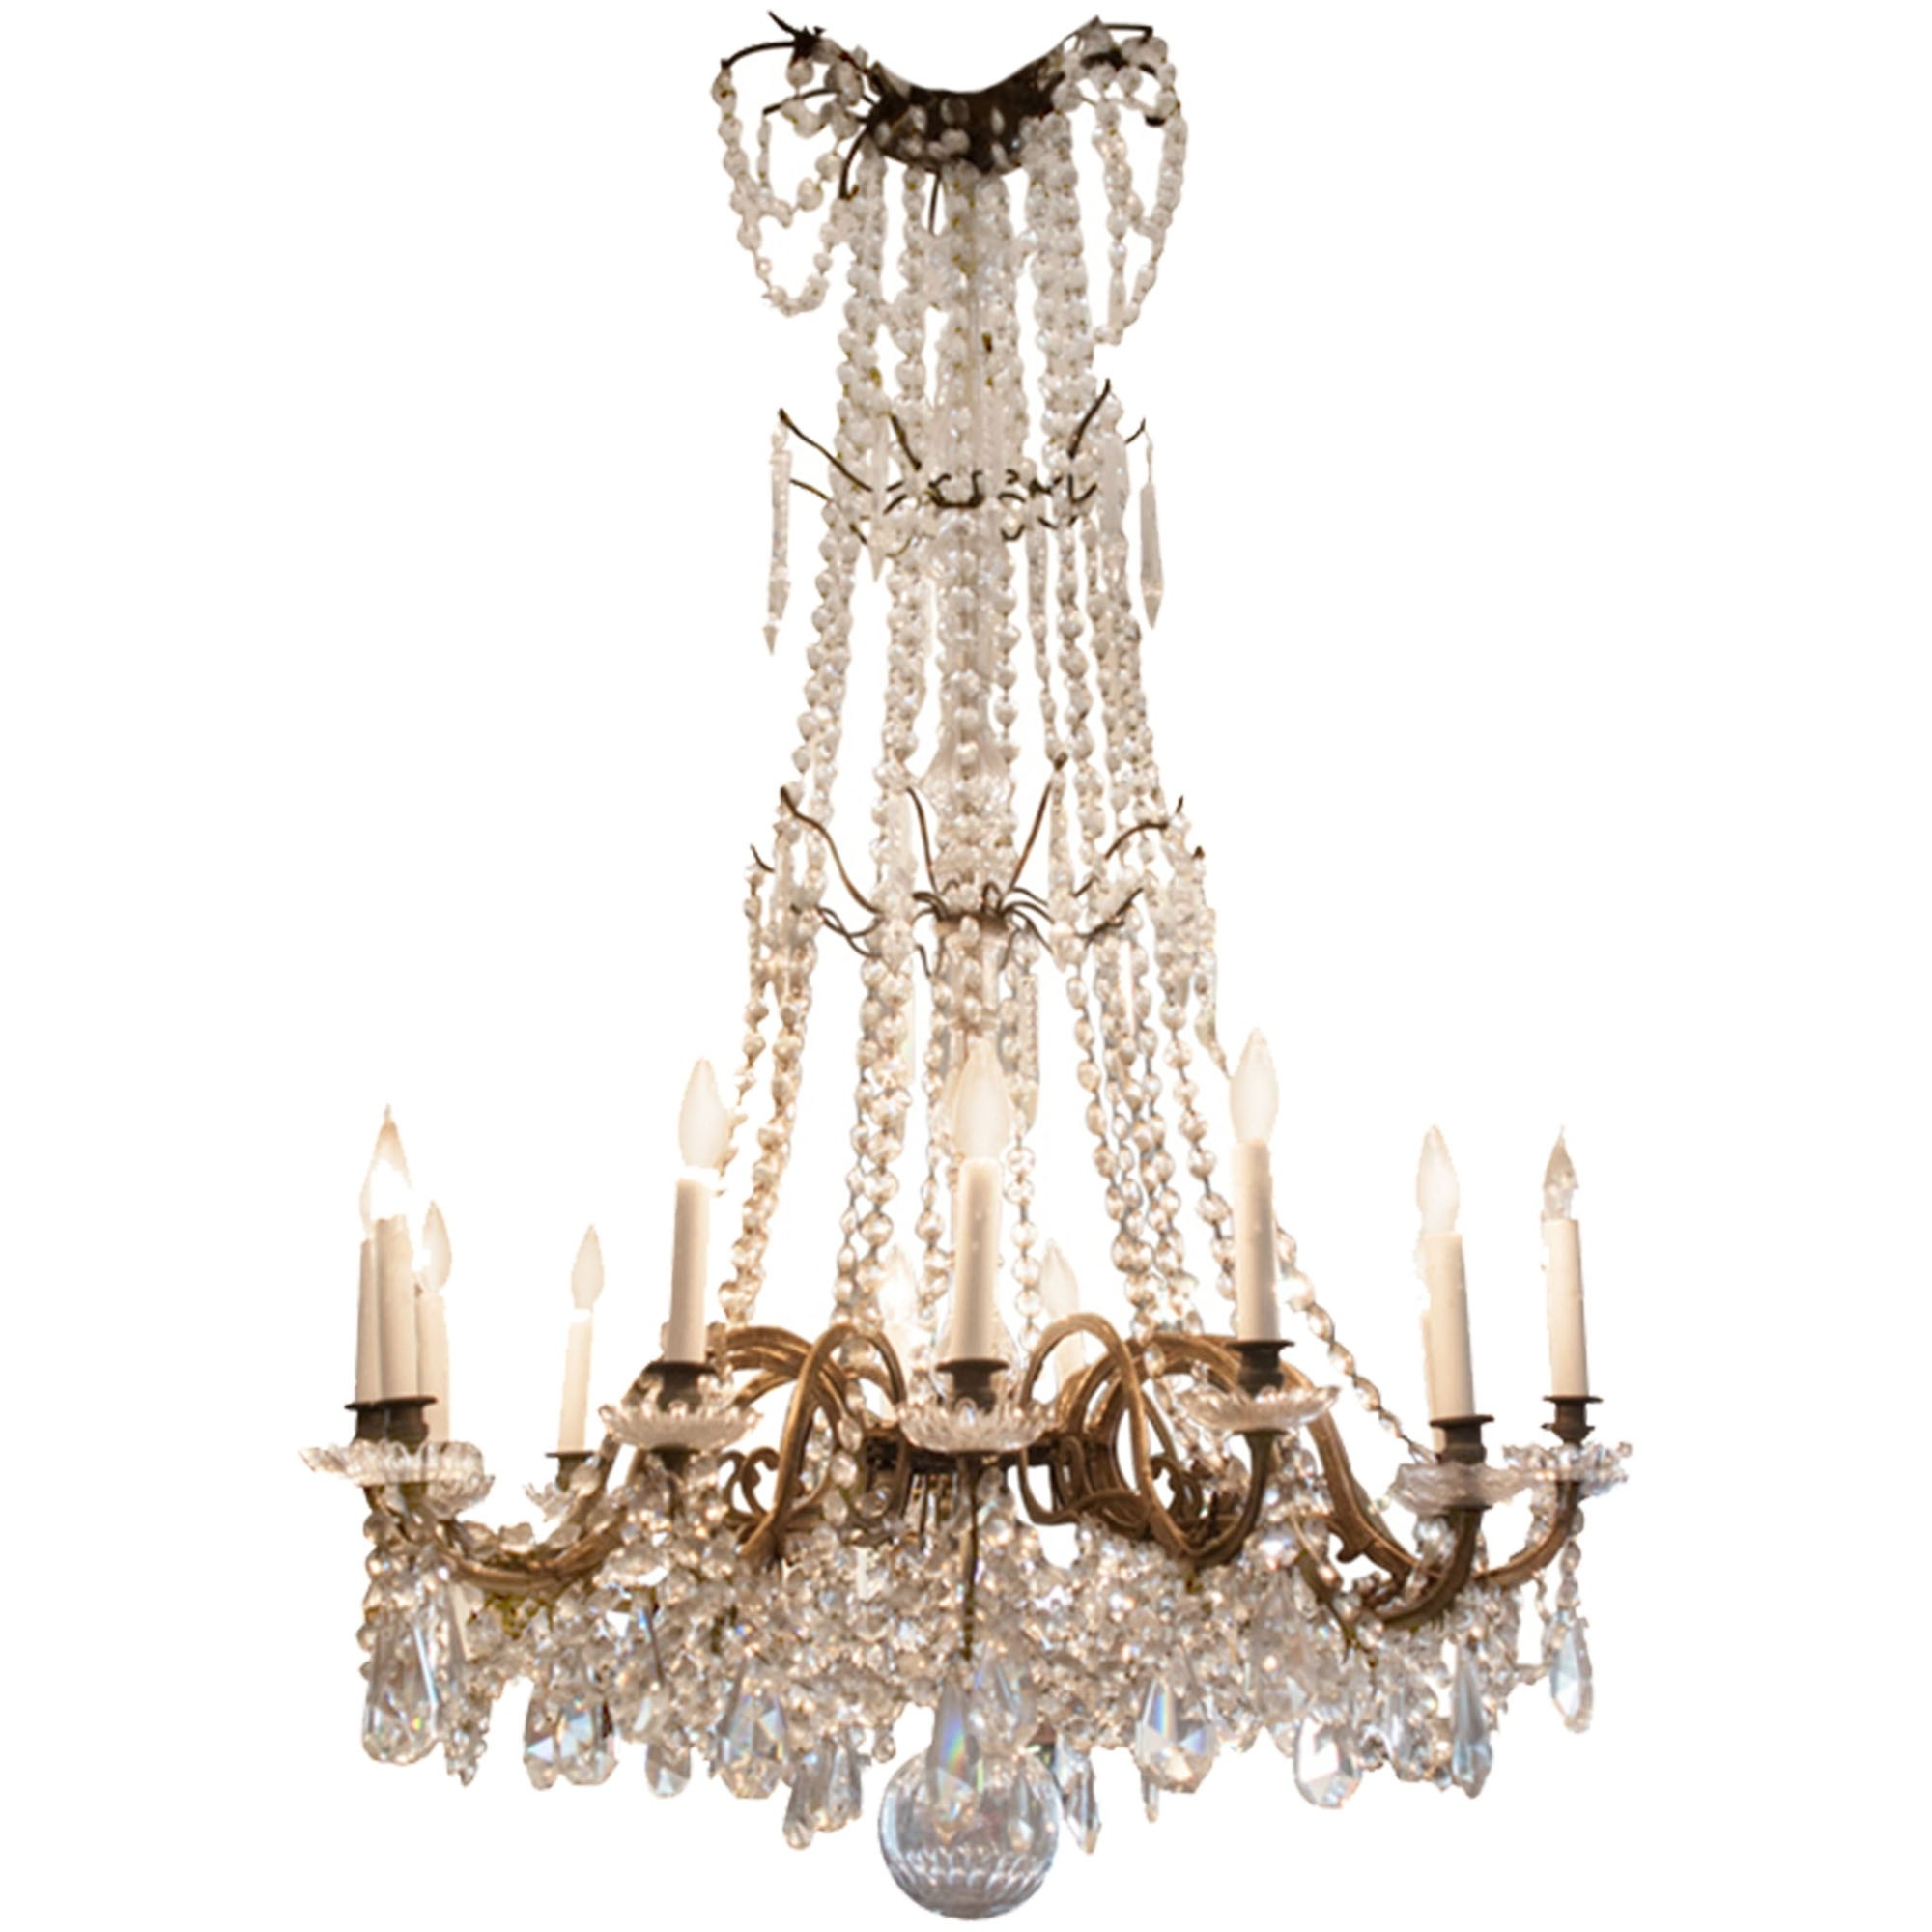 Most Recent French Style Chandelier – Chandelier Showroom With French Style Chandelier (View 16 of 20)